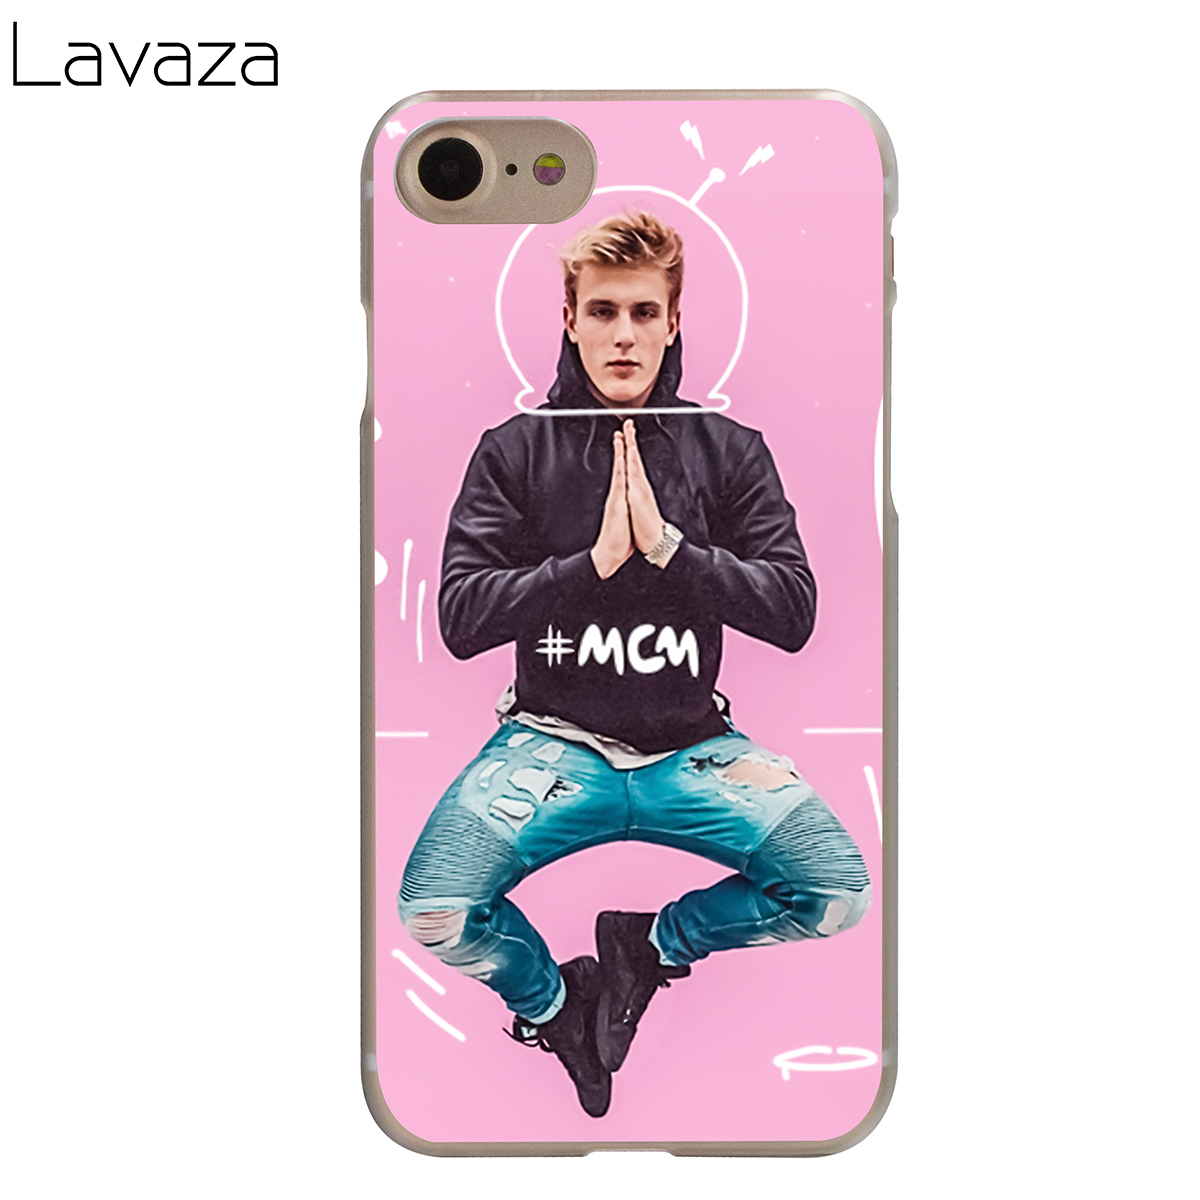 official photos 7ef52 77589 US $2.12 6% OFF|Lavaza Jake Paul Team 10 Case for iPhone XS Max XR X 8 7 6  6S Plus 5 5s se-in Half-wrapped Case from Cellphones & Telecommunications  ...